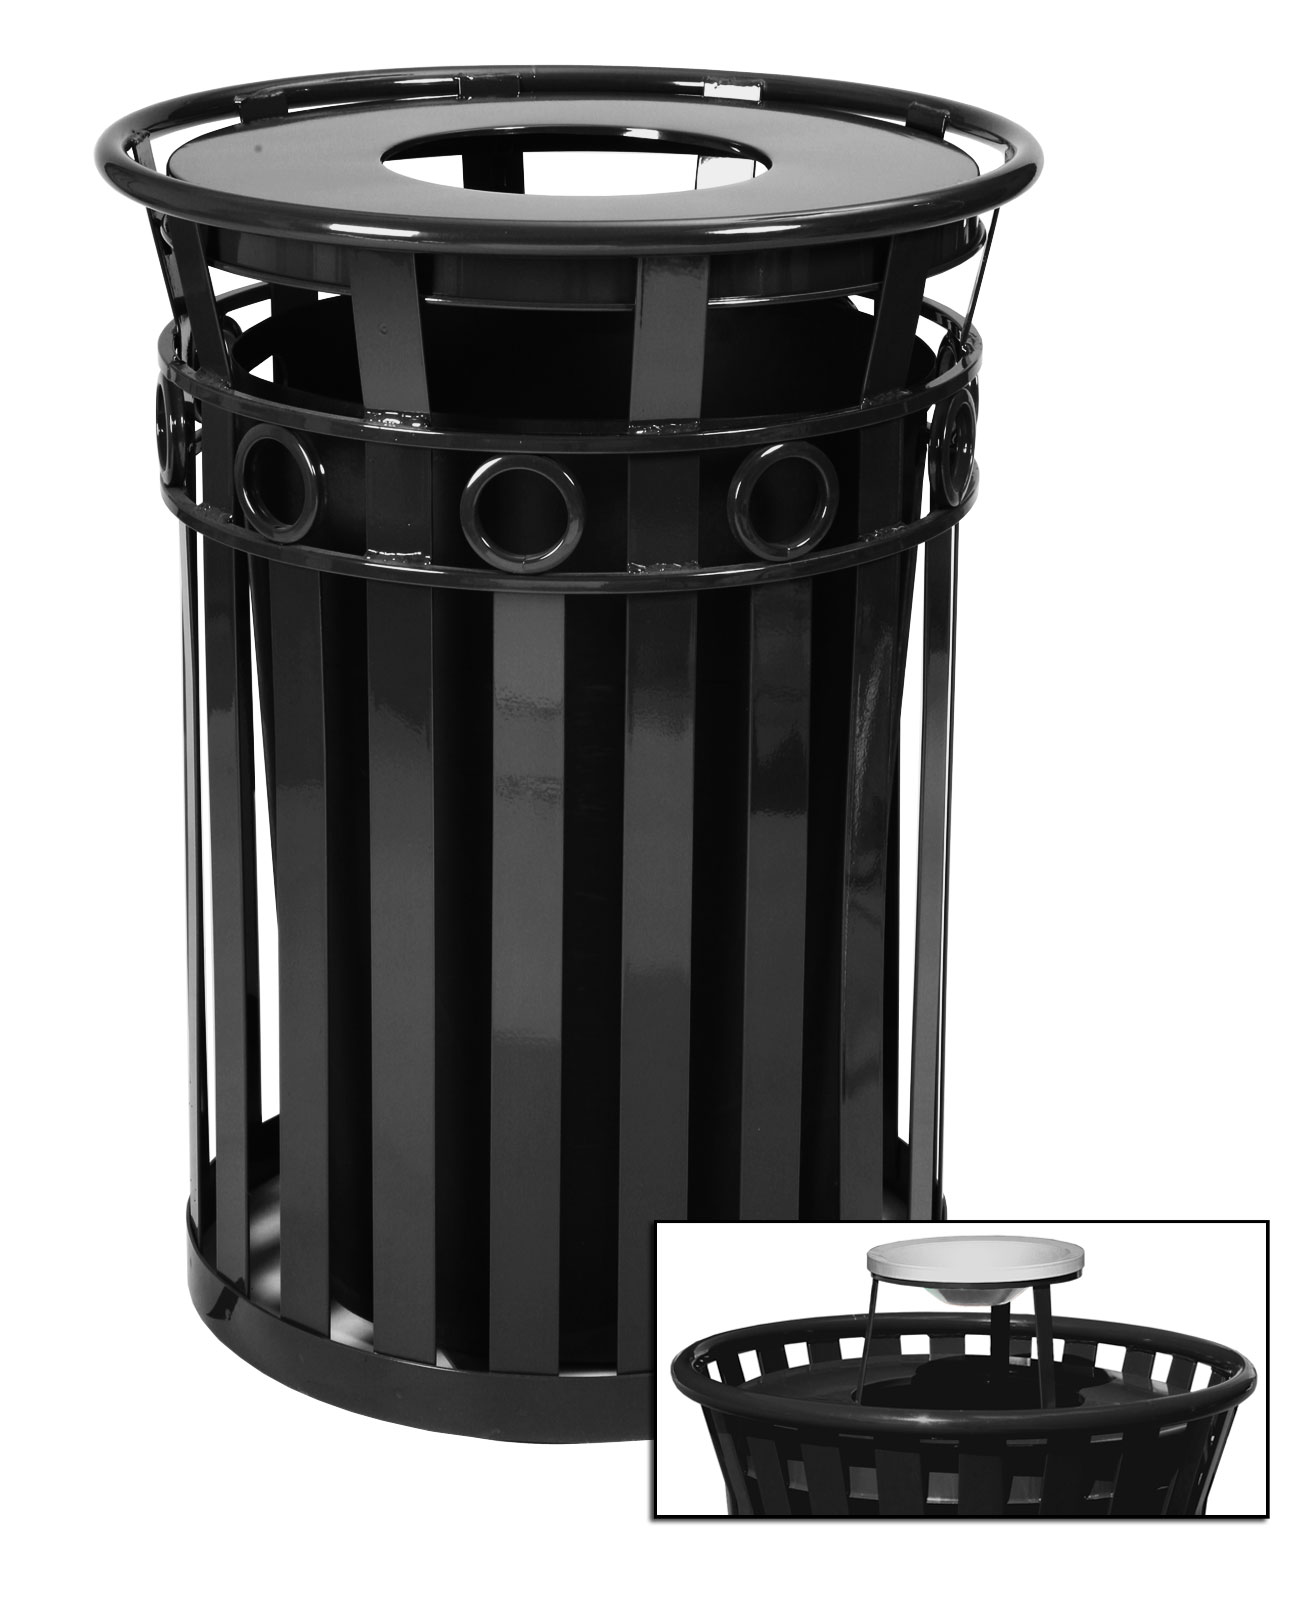 Aluminium Garbage Cans : Gallon oakley decorative outdoor steel trash cans